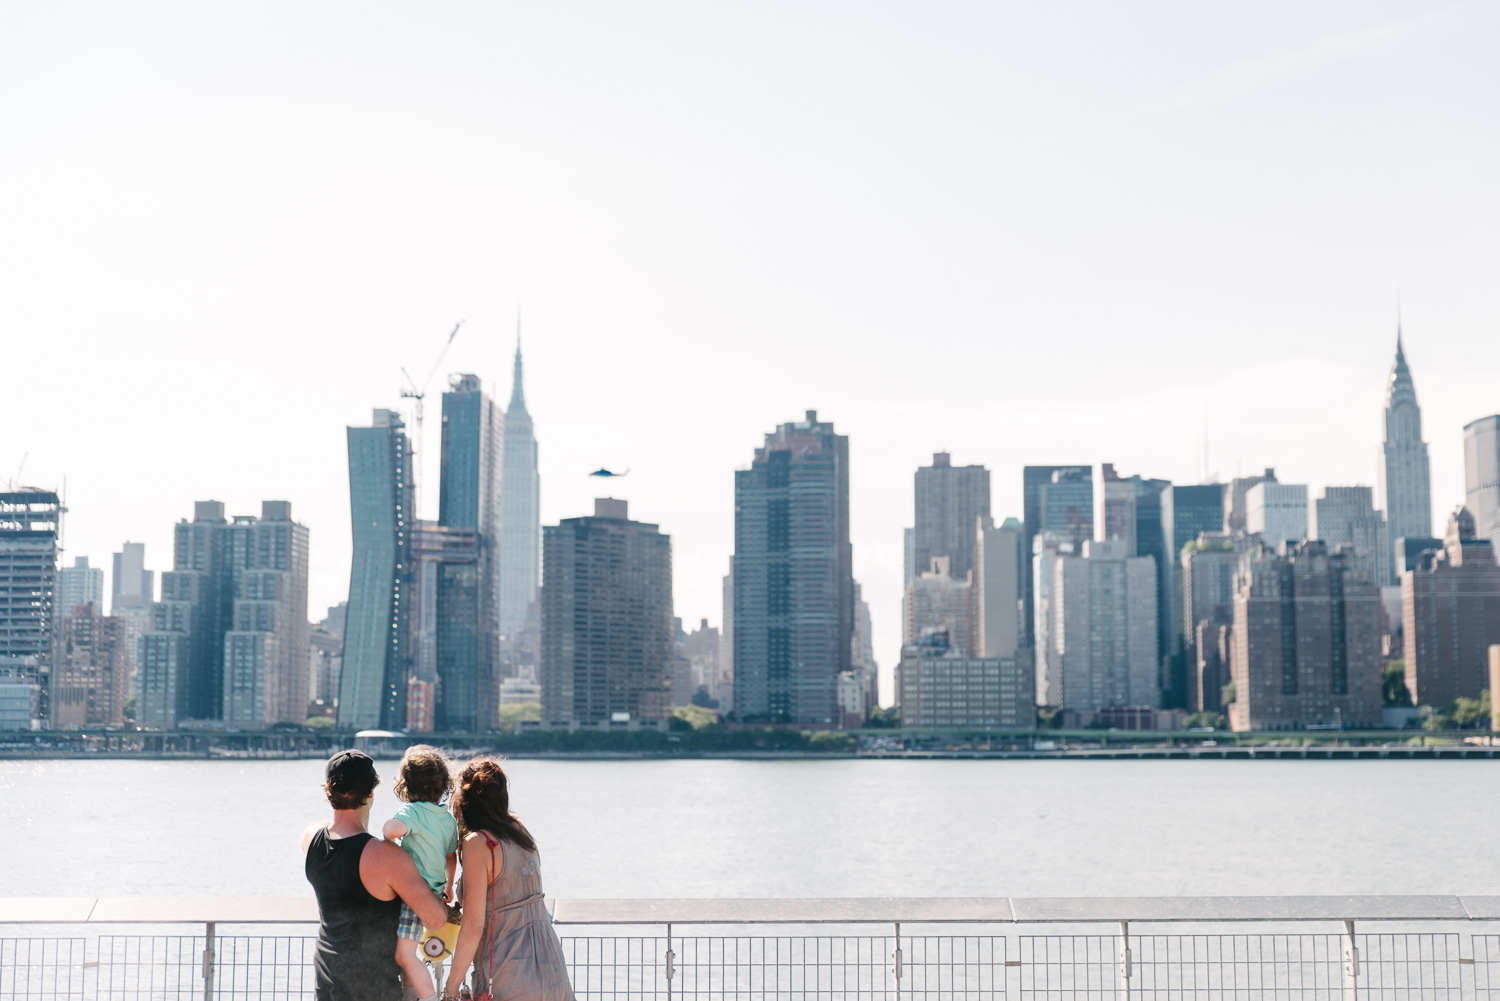 A family looks out over the east river at the NYC skyline.